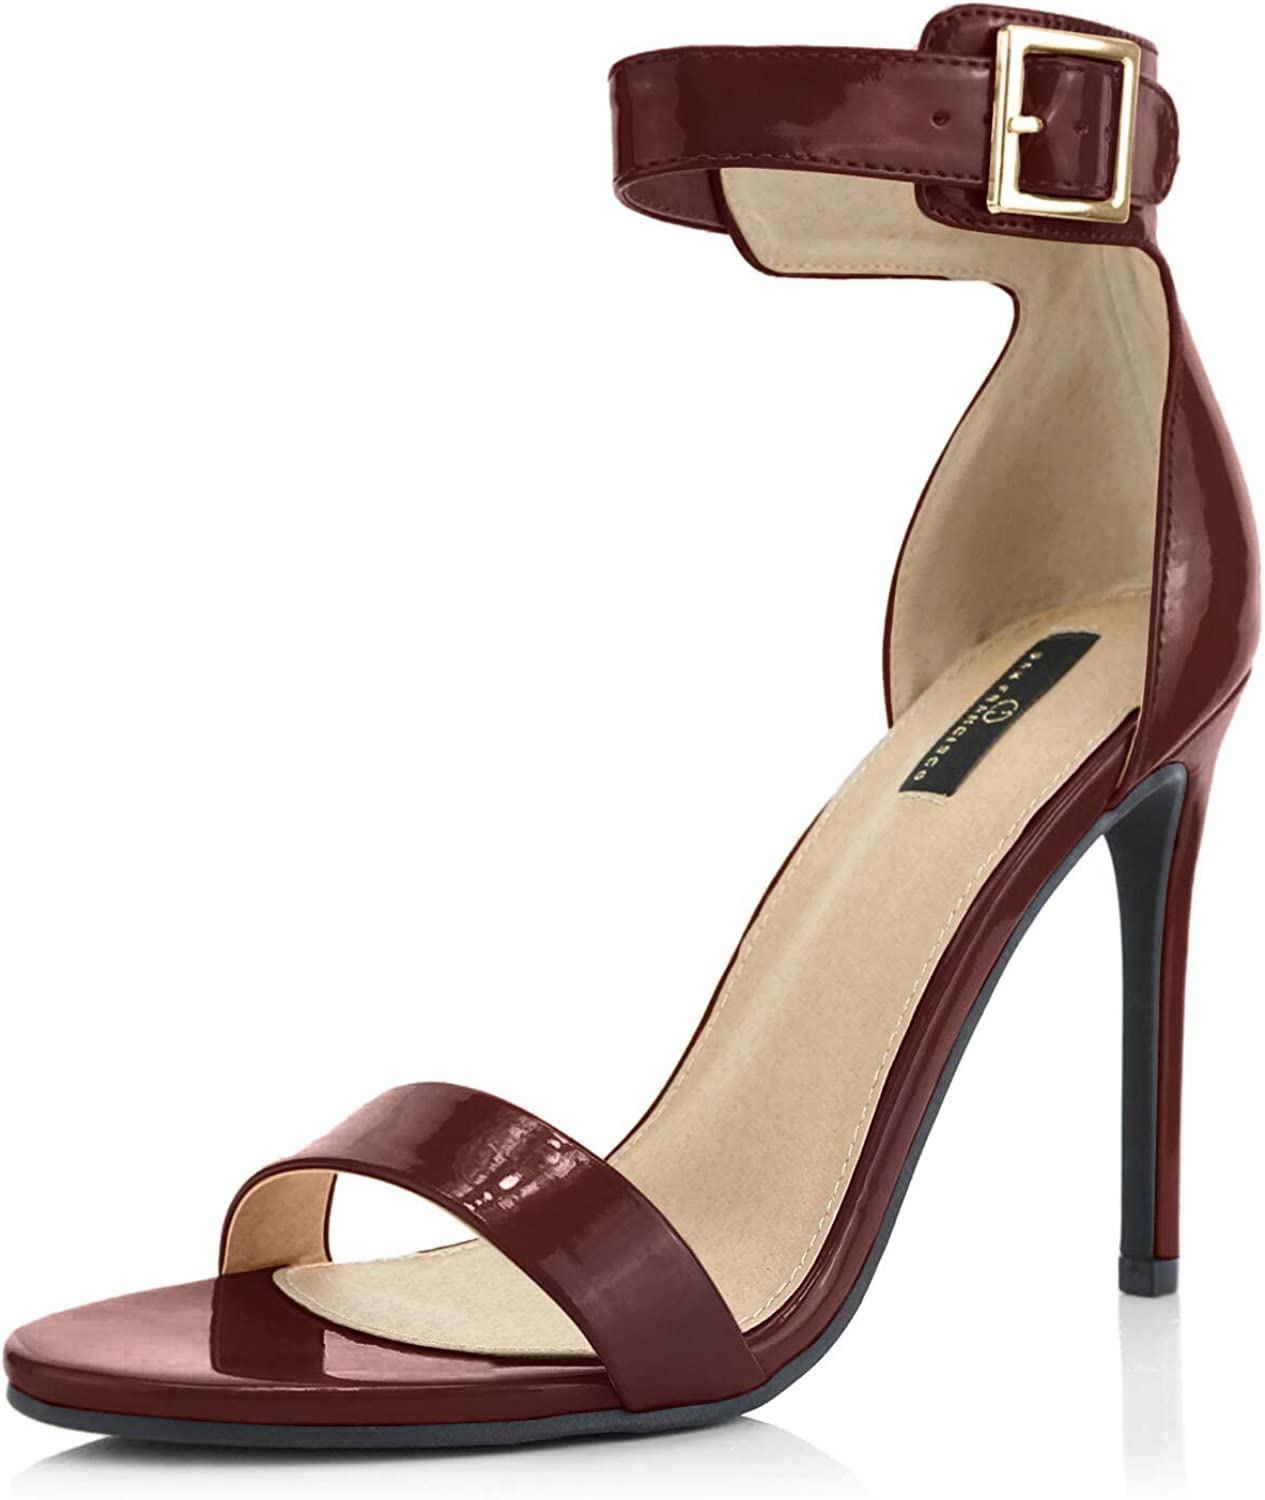 DailyShoes Women's Stiletto In a popularity Challenge the lowest price of Japan Heels Open Ankle Toe Pl Buckle Strap